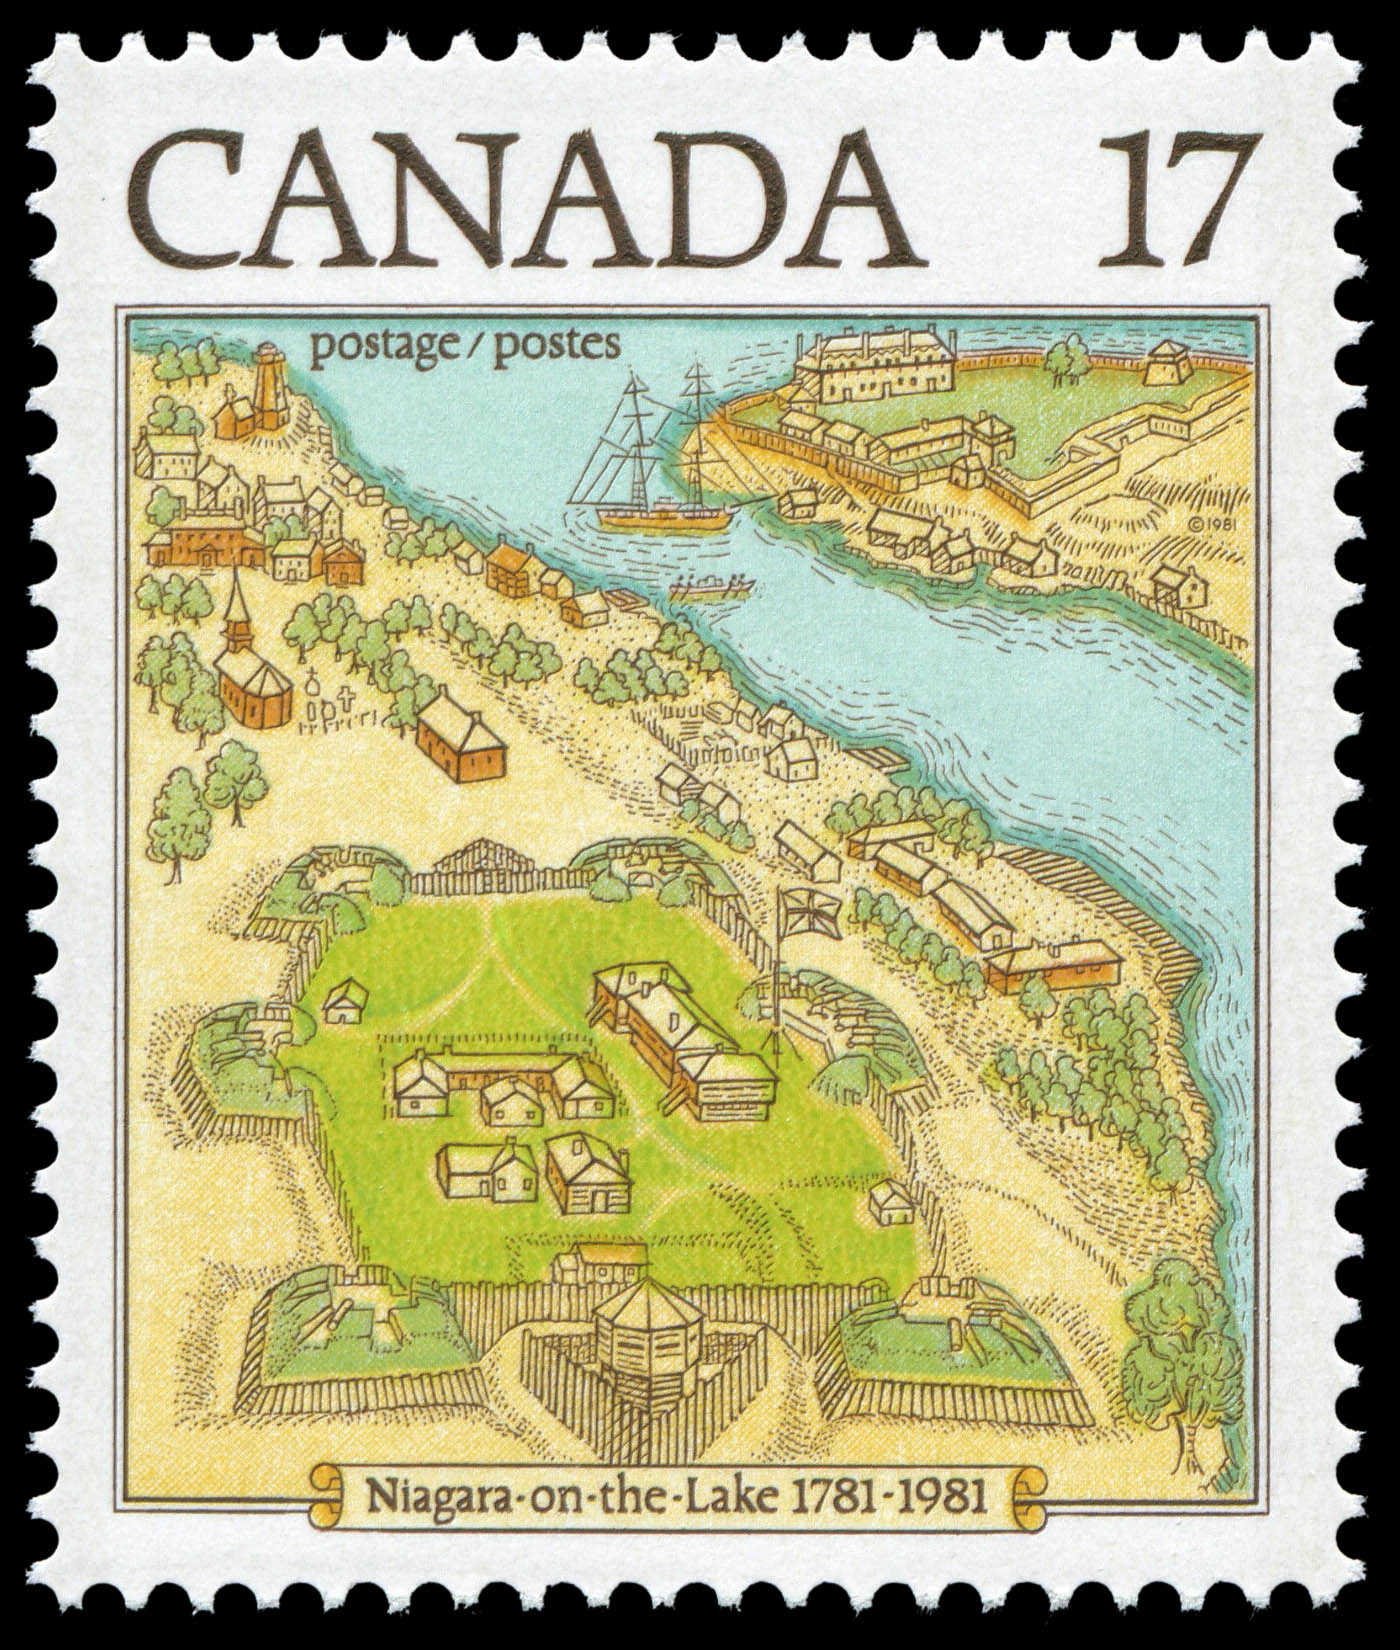 Niagara-on-the-Lake, 1781-1981 Canada Postage Stamp